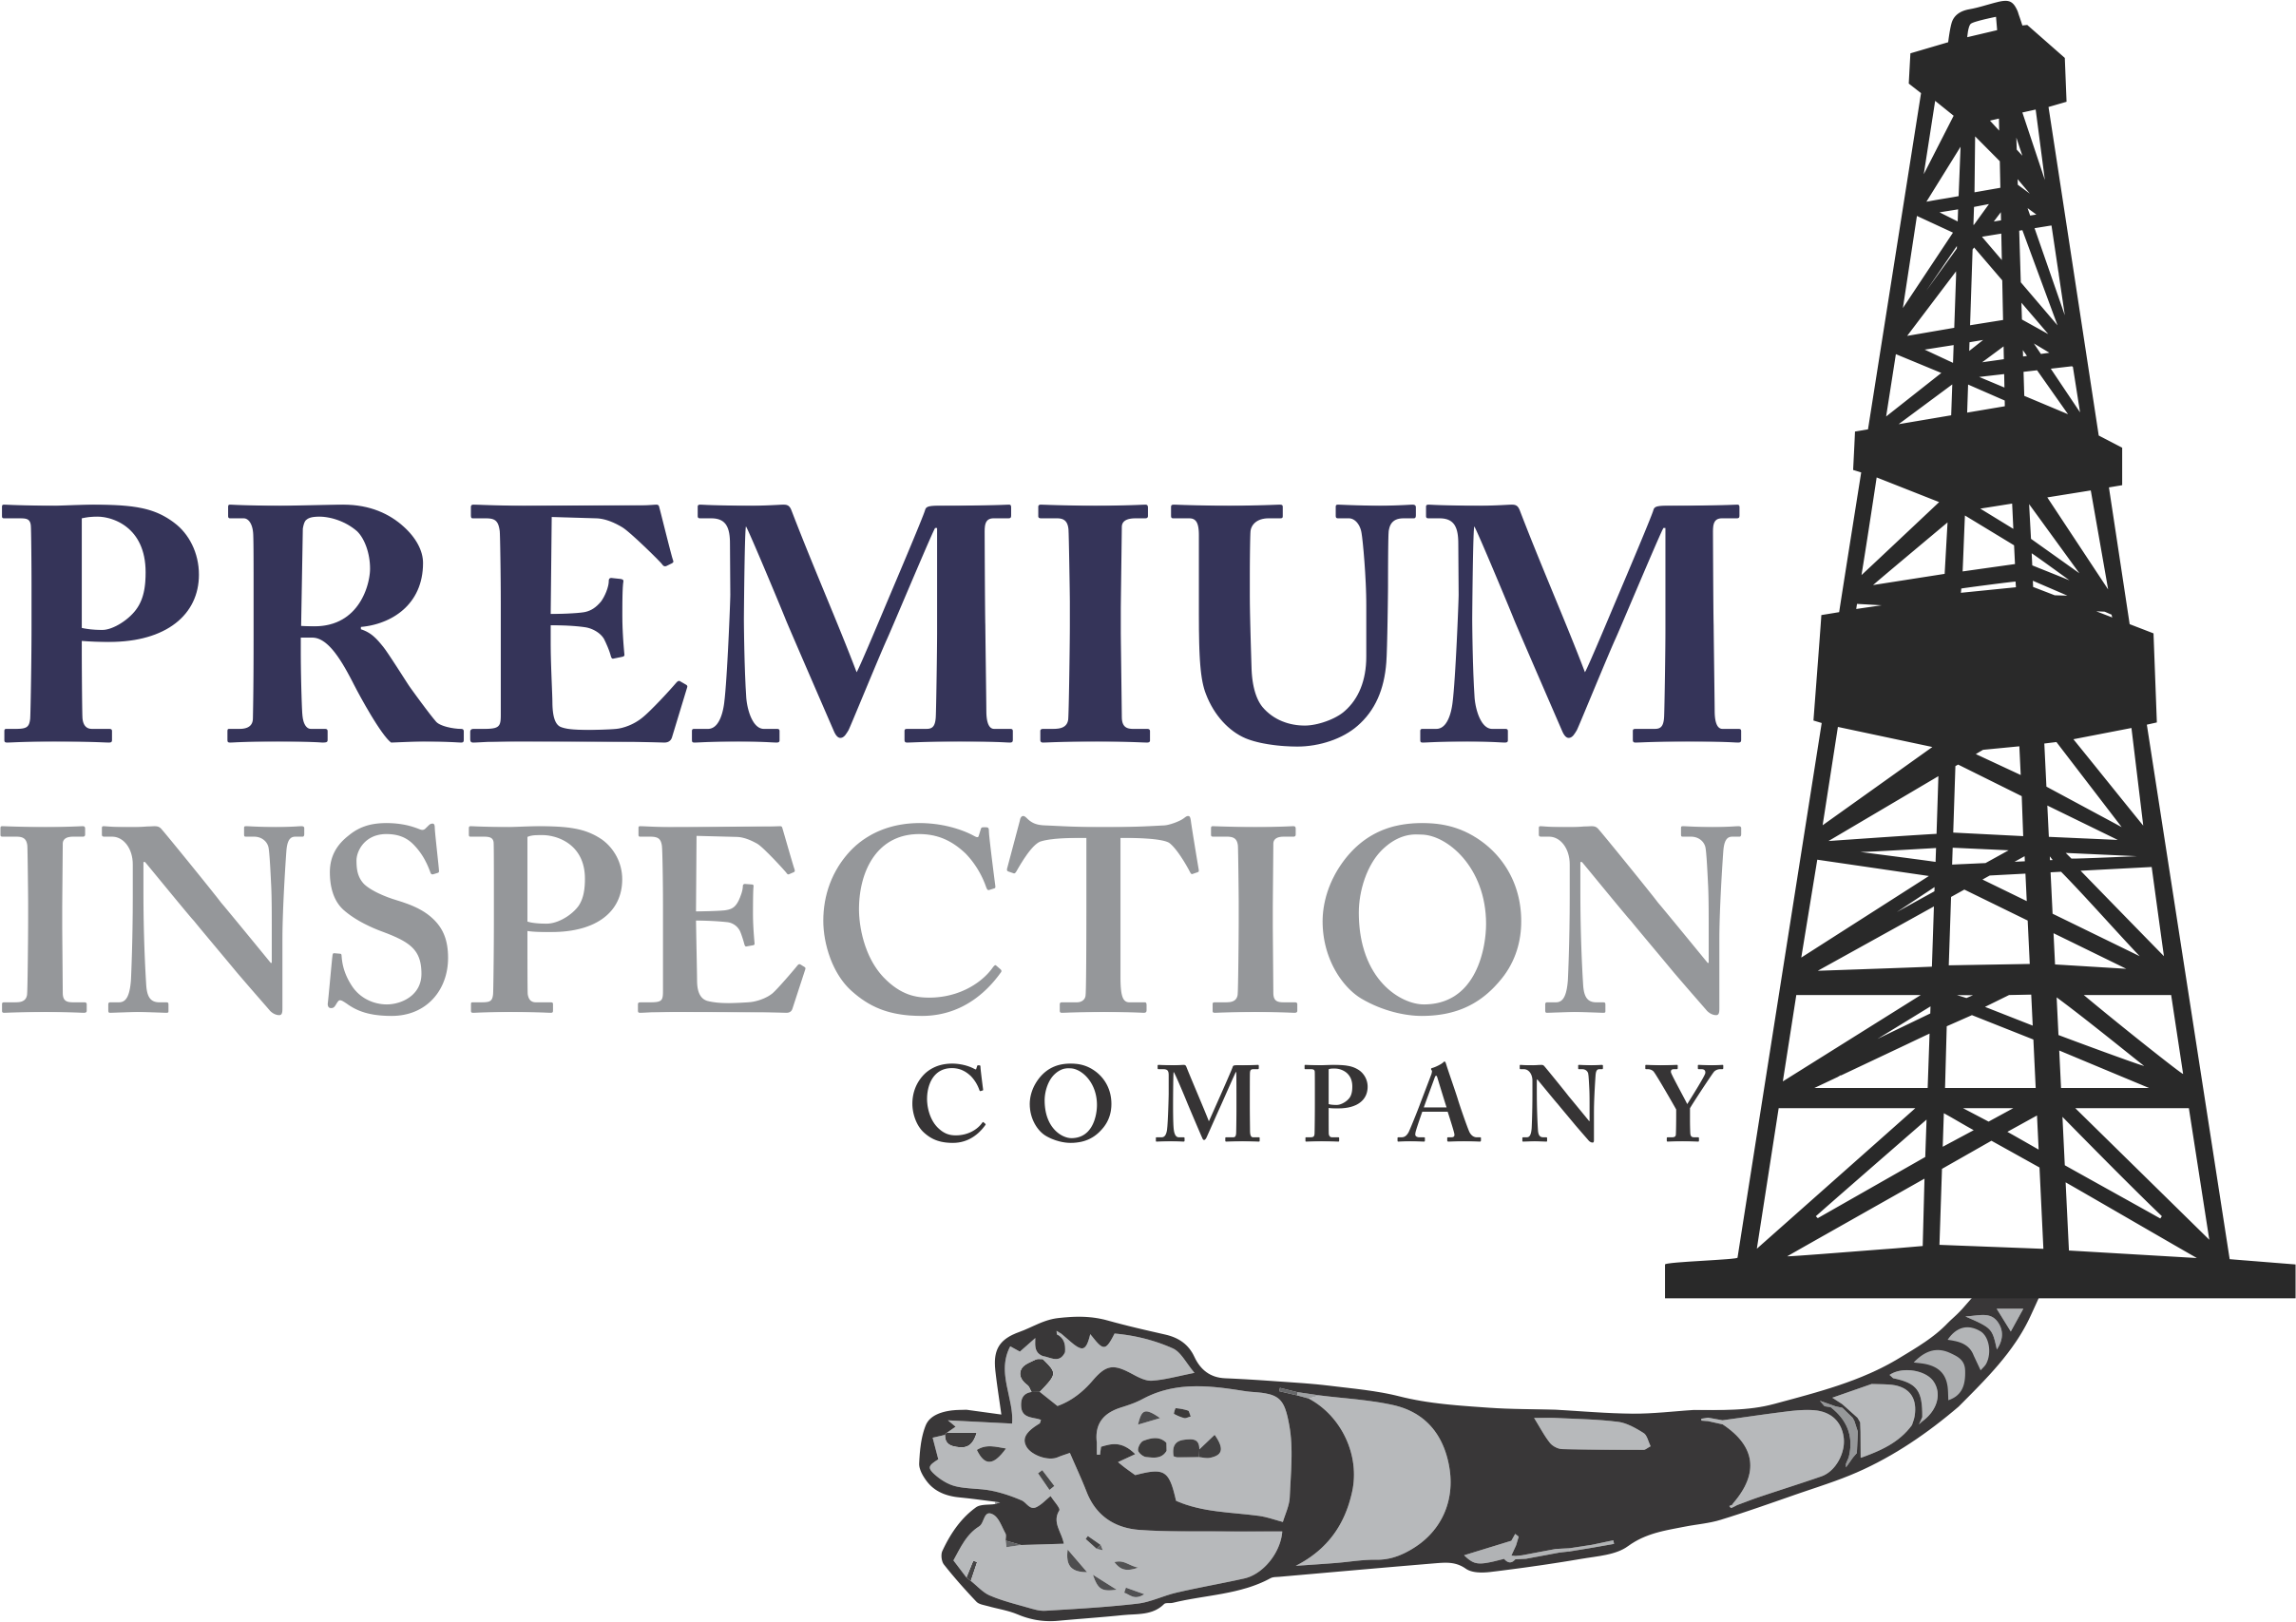 Premium Inspection Company